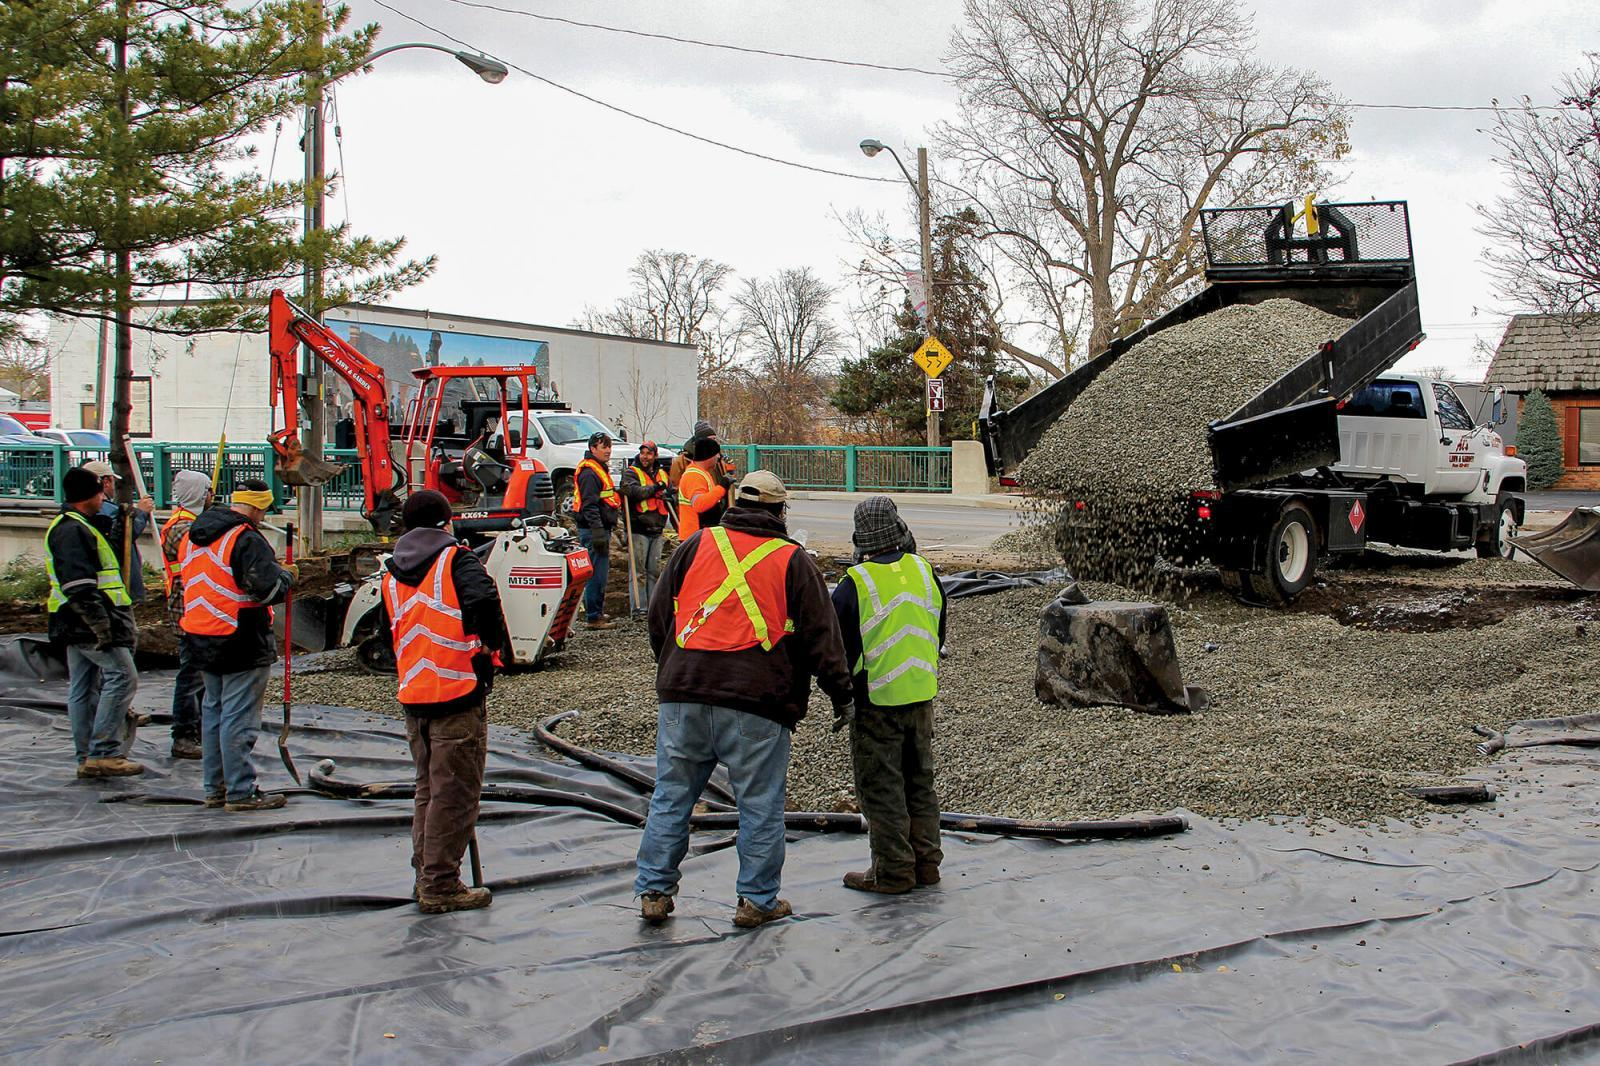 There was no lack of manpower when construction began on Chatham's newest park.